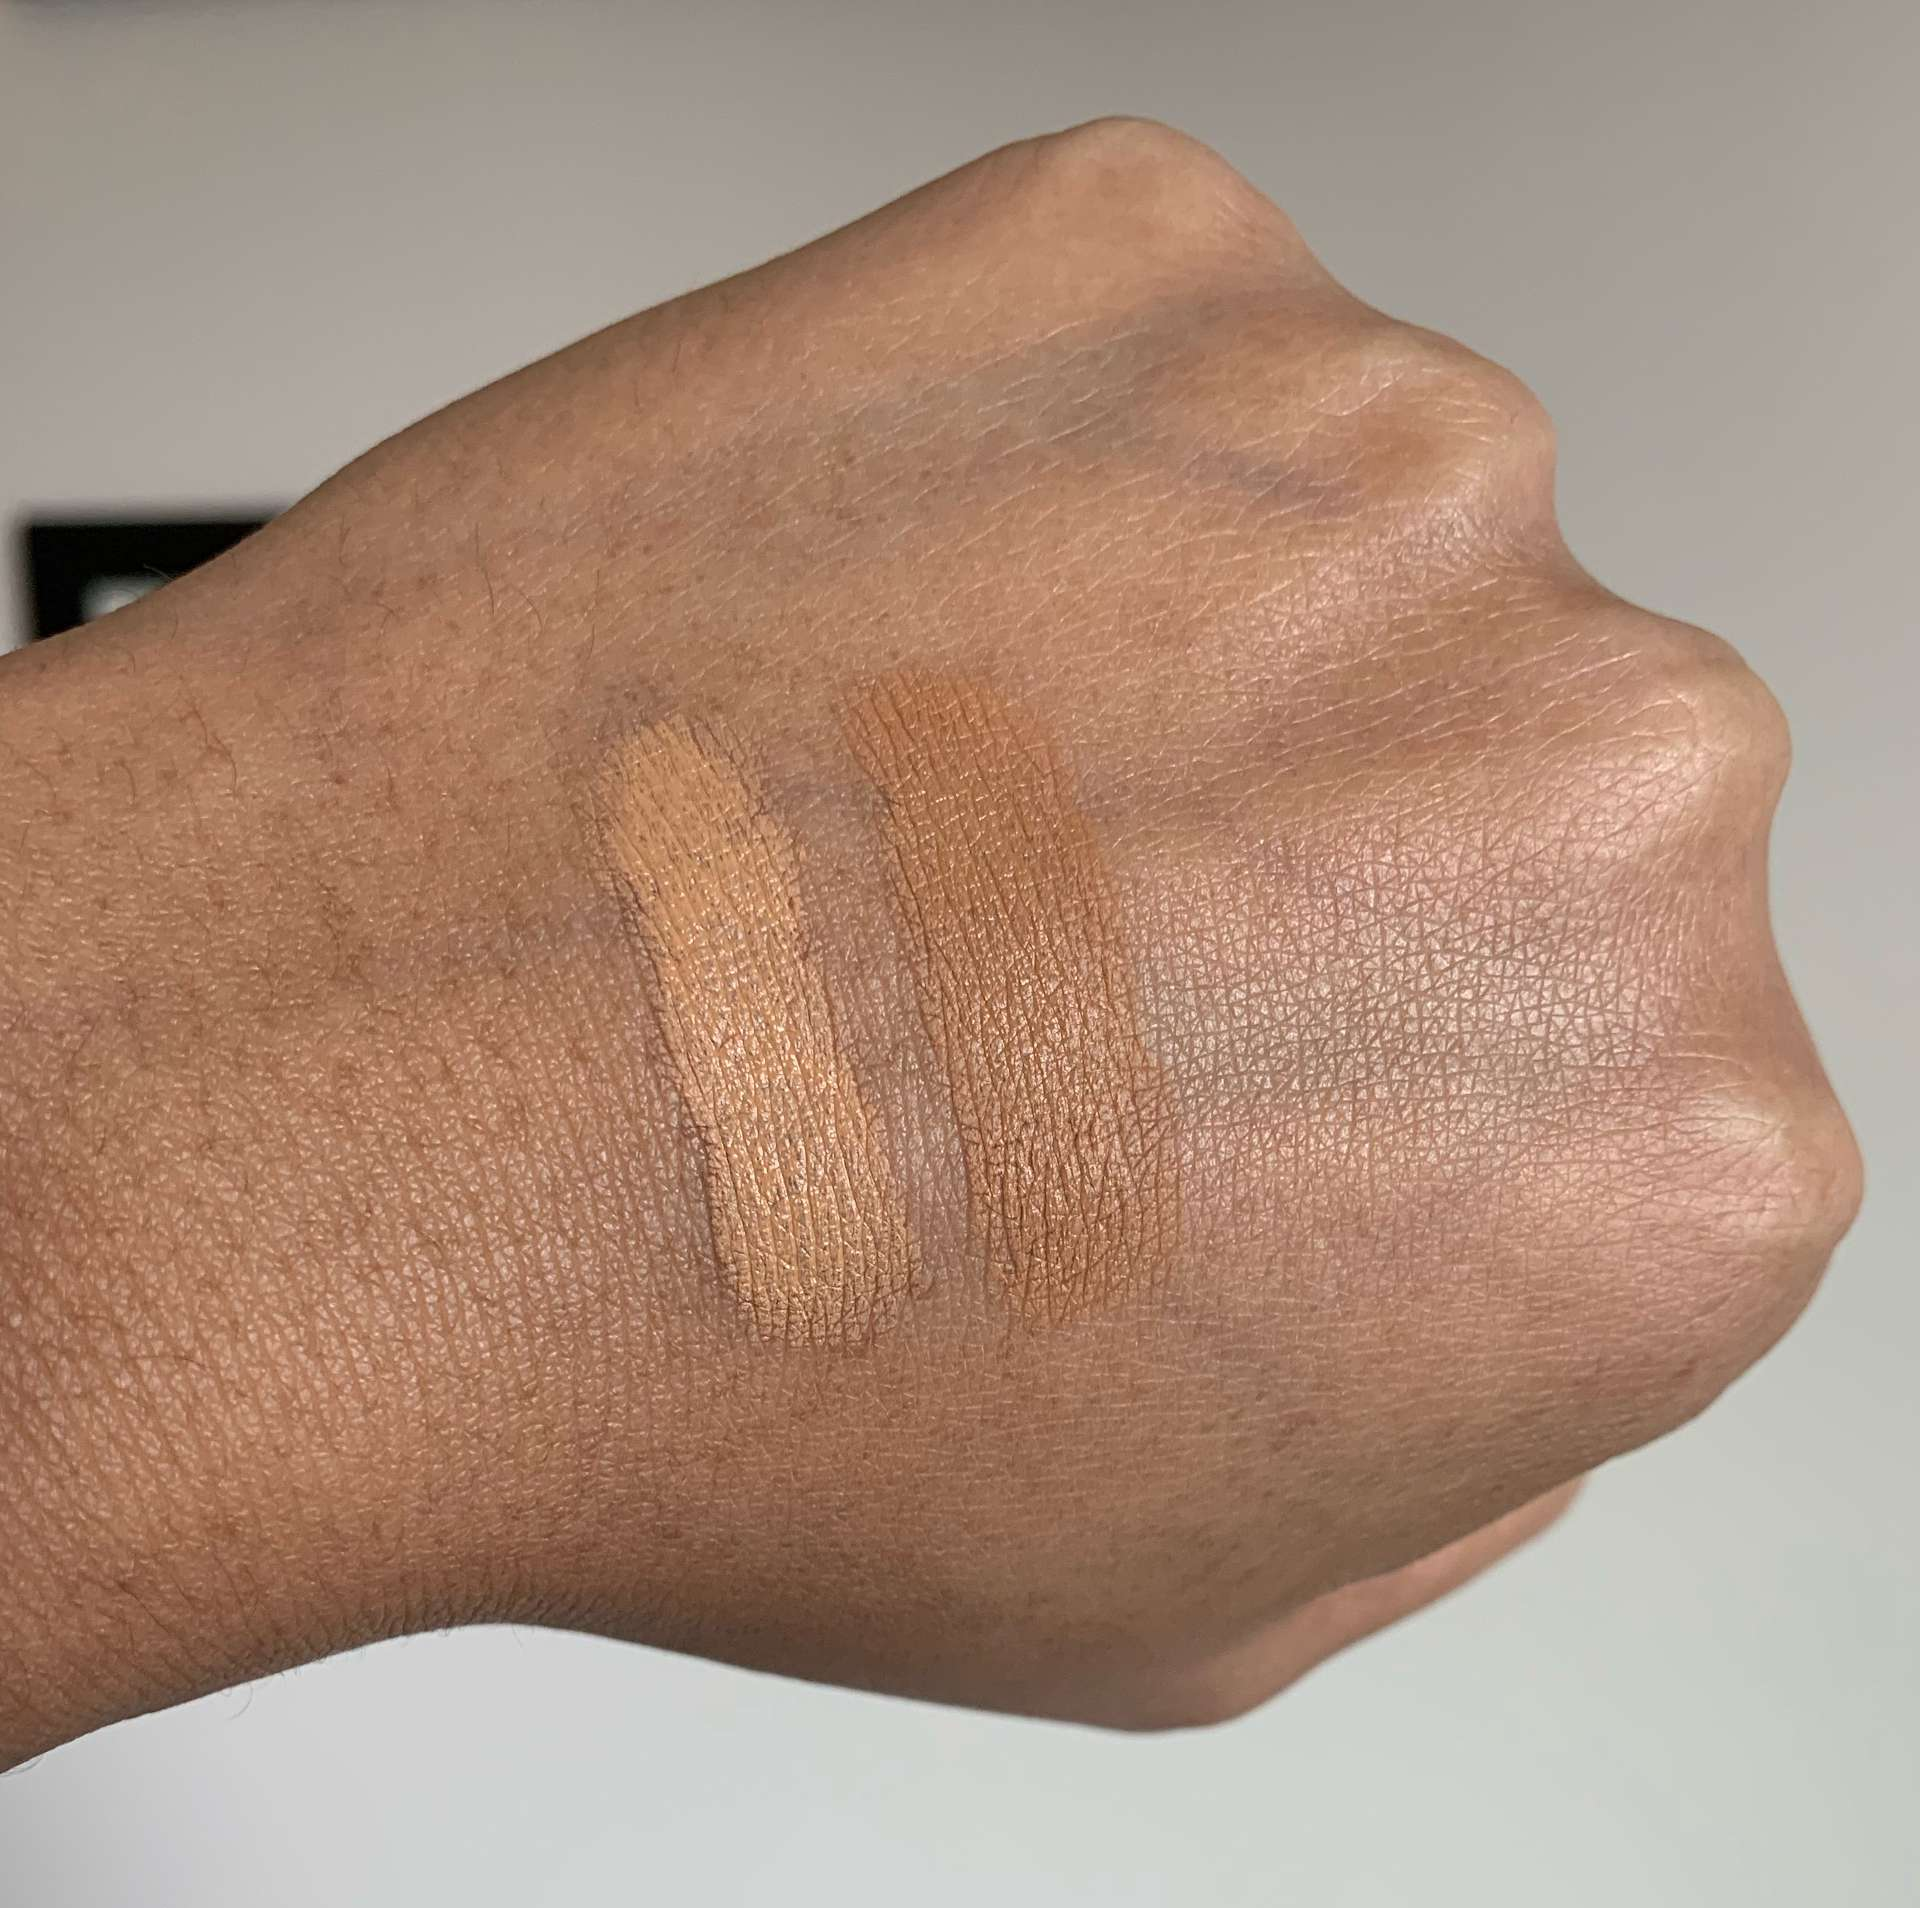 Lancome Teint Idole Ultra Stick Foundation 415 Bisque W and 435 Bisque W swatches